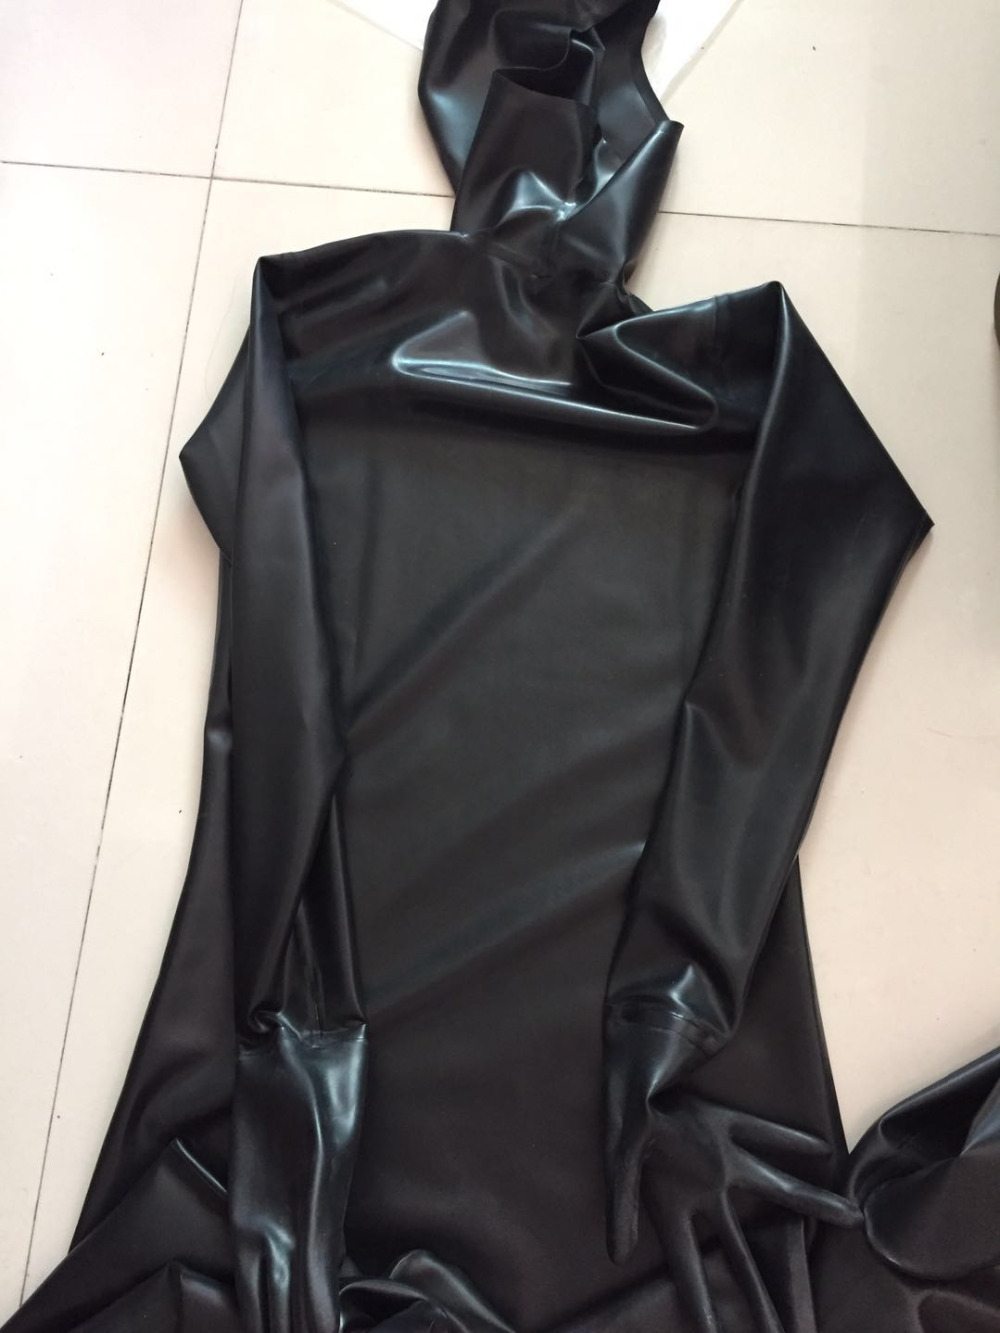 Latex tights bodysuit catsuit zentai customization handmade without zip face entrance flexible latex fabric w gloves